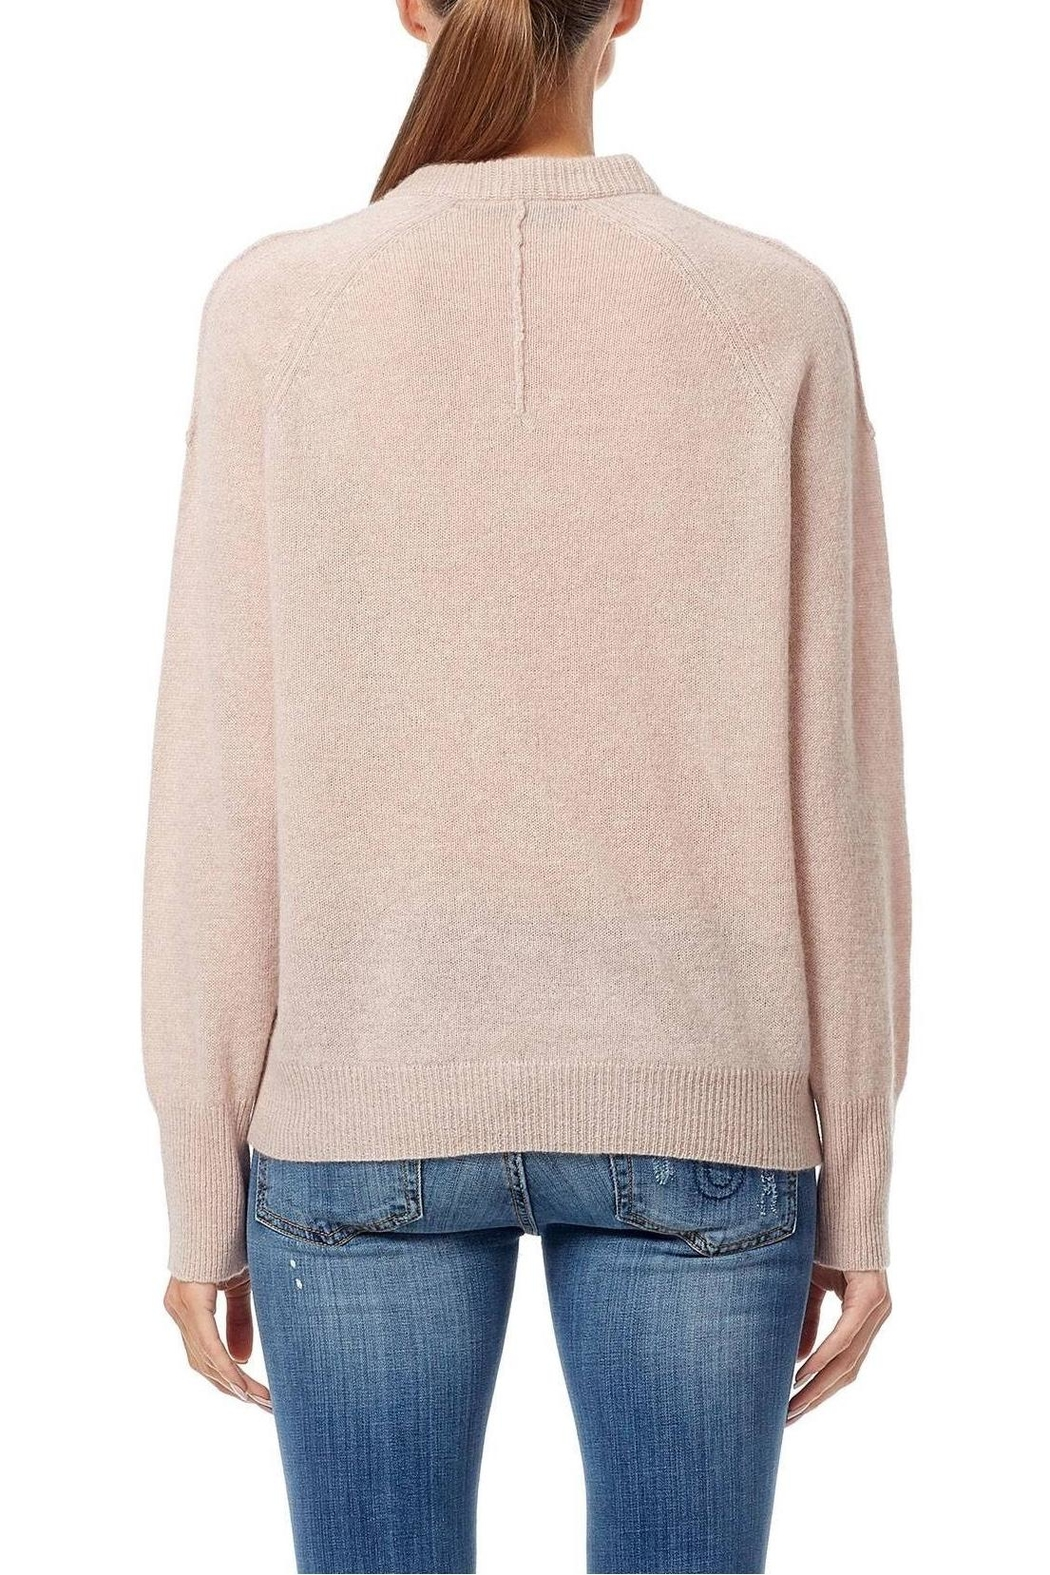 360 Cashmere Danielle Sweater - Side Cropped Image